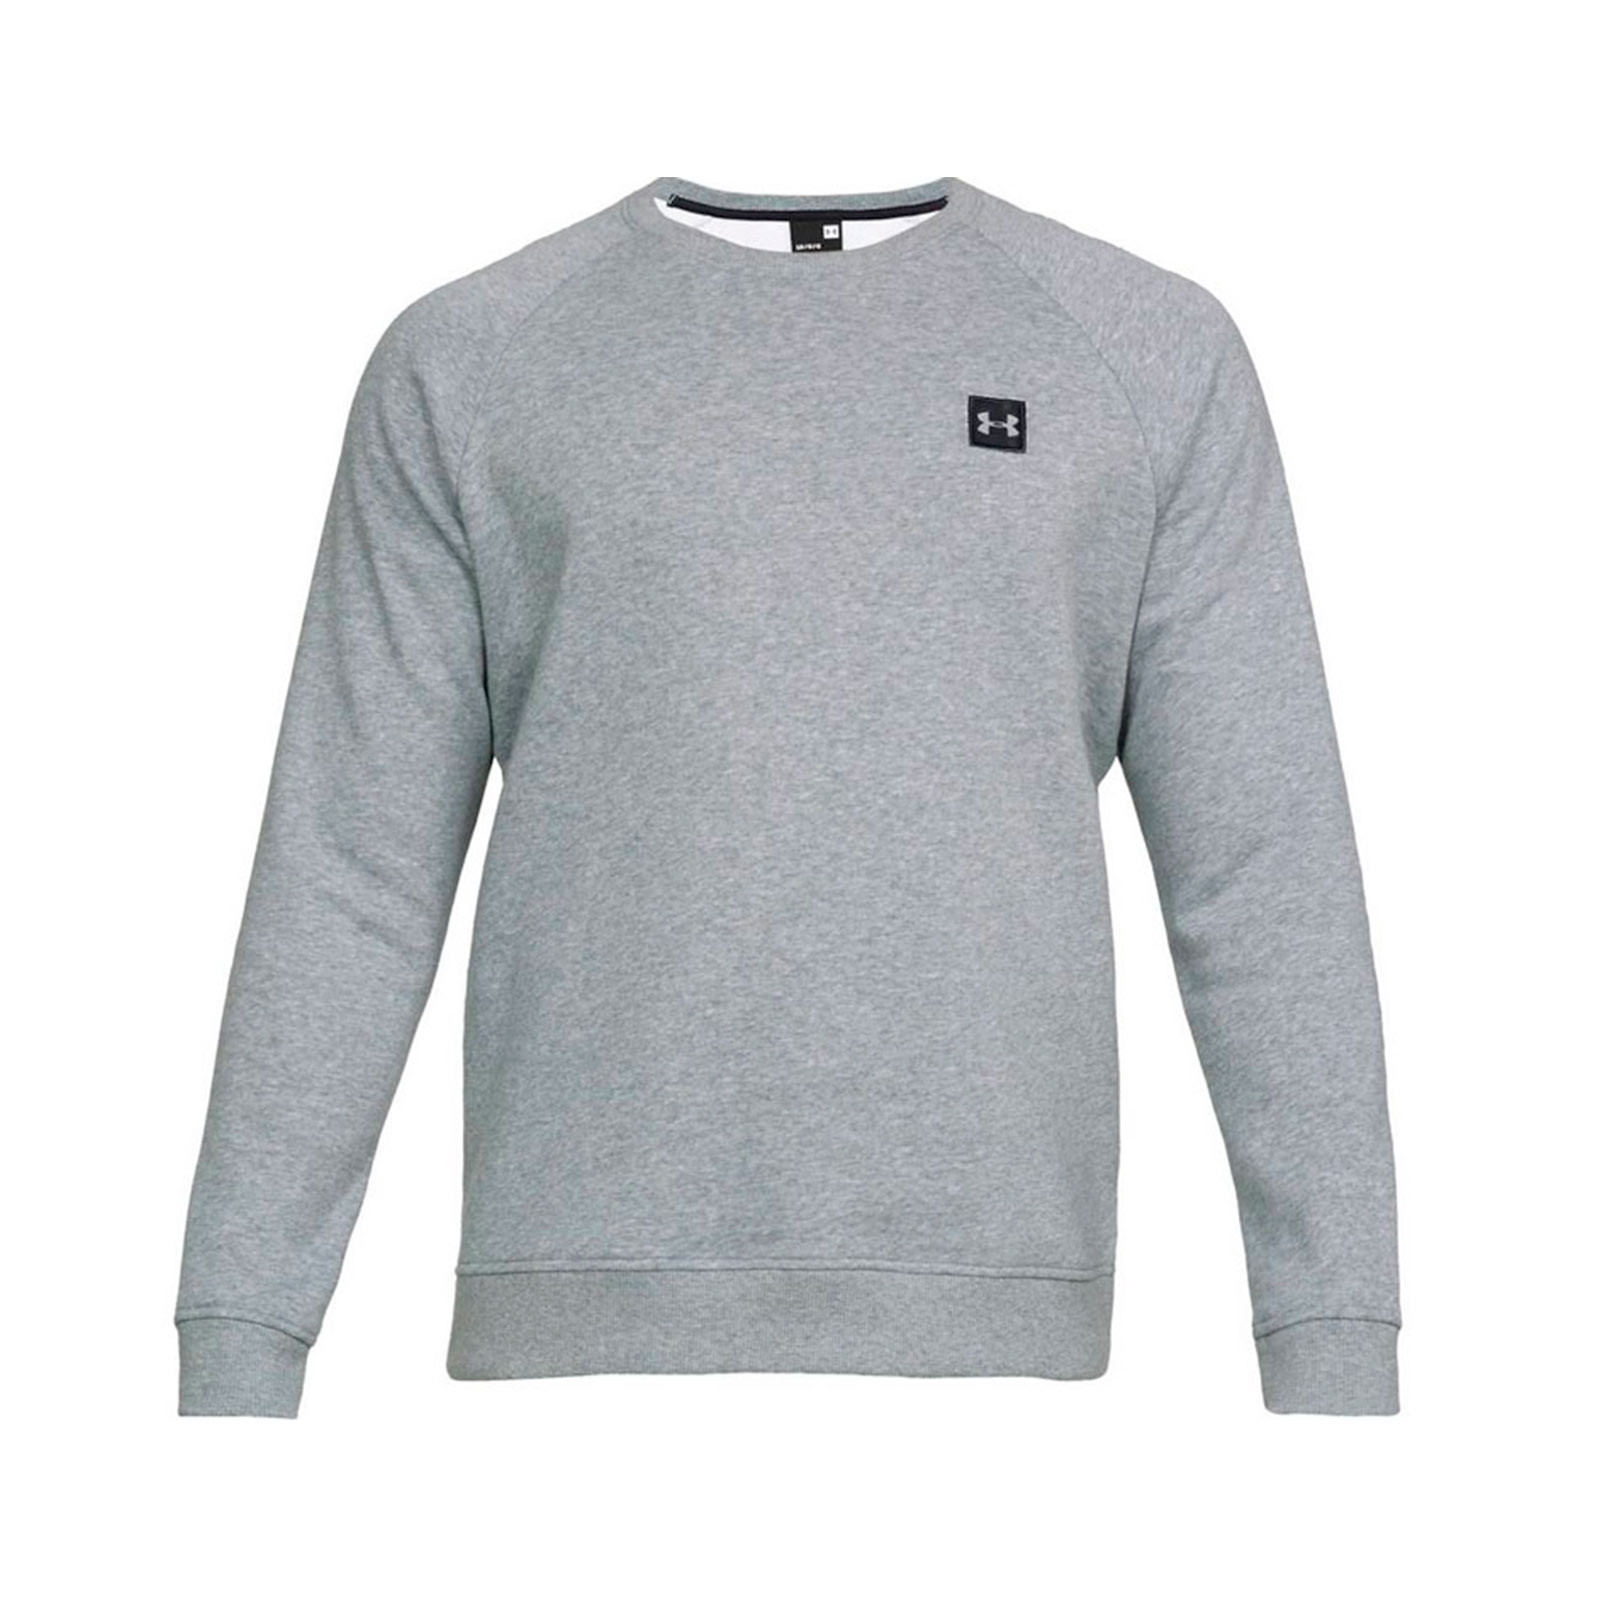 cuero Pensar en el futuro alfiler  Polera Under Armour Rival Fleece Crew-Gry Training para Hombre | Runa Store